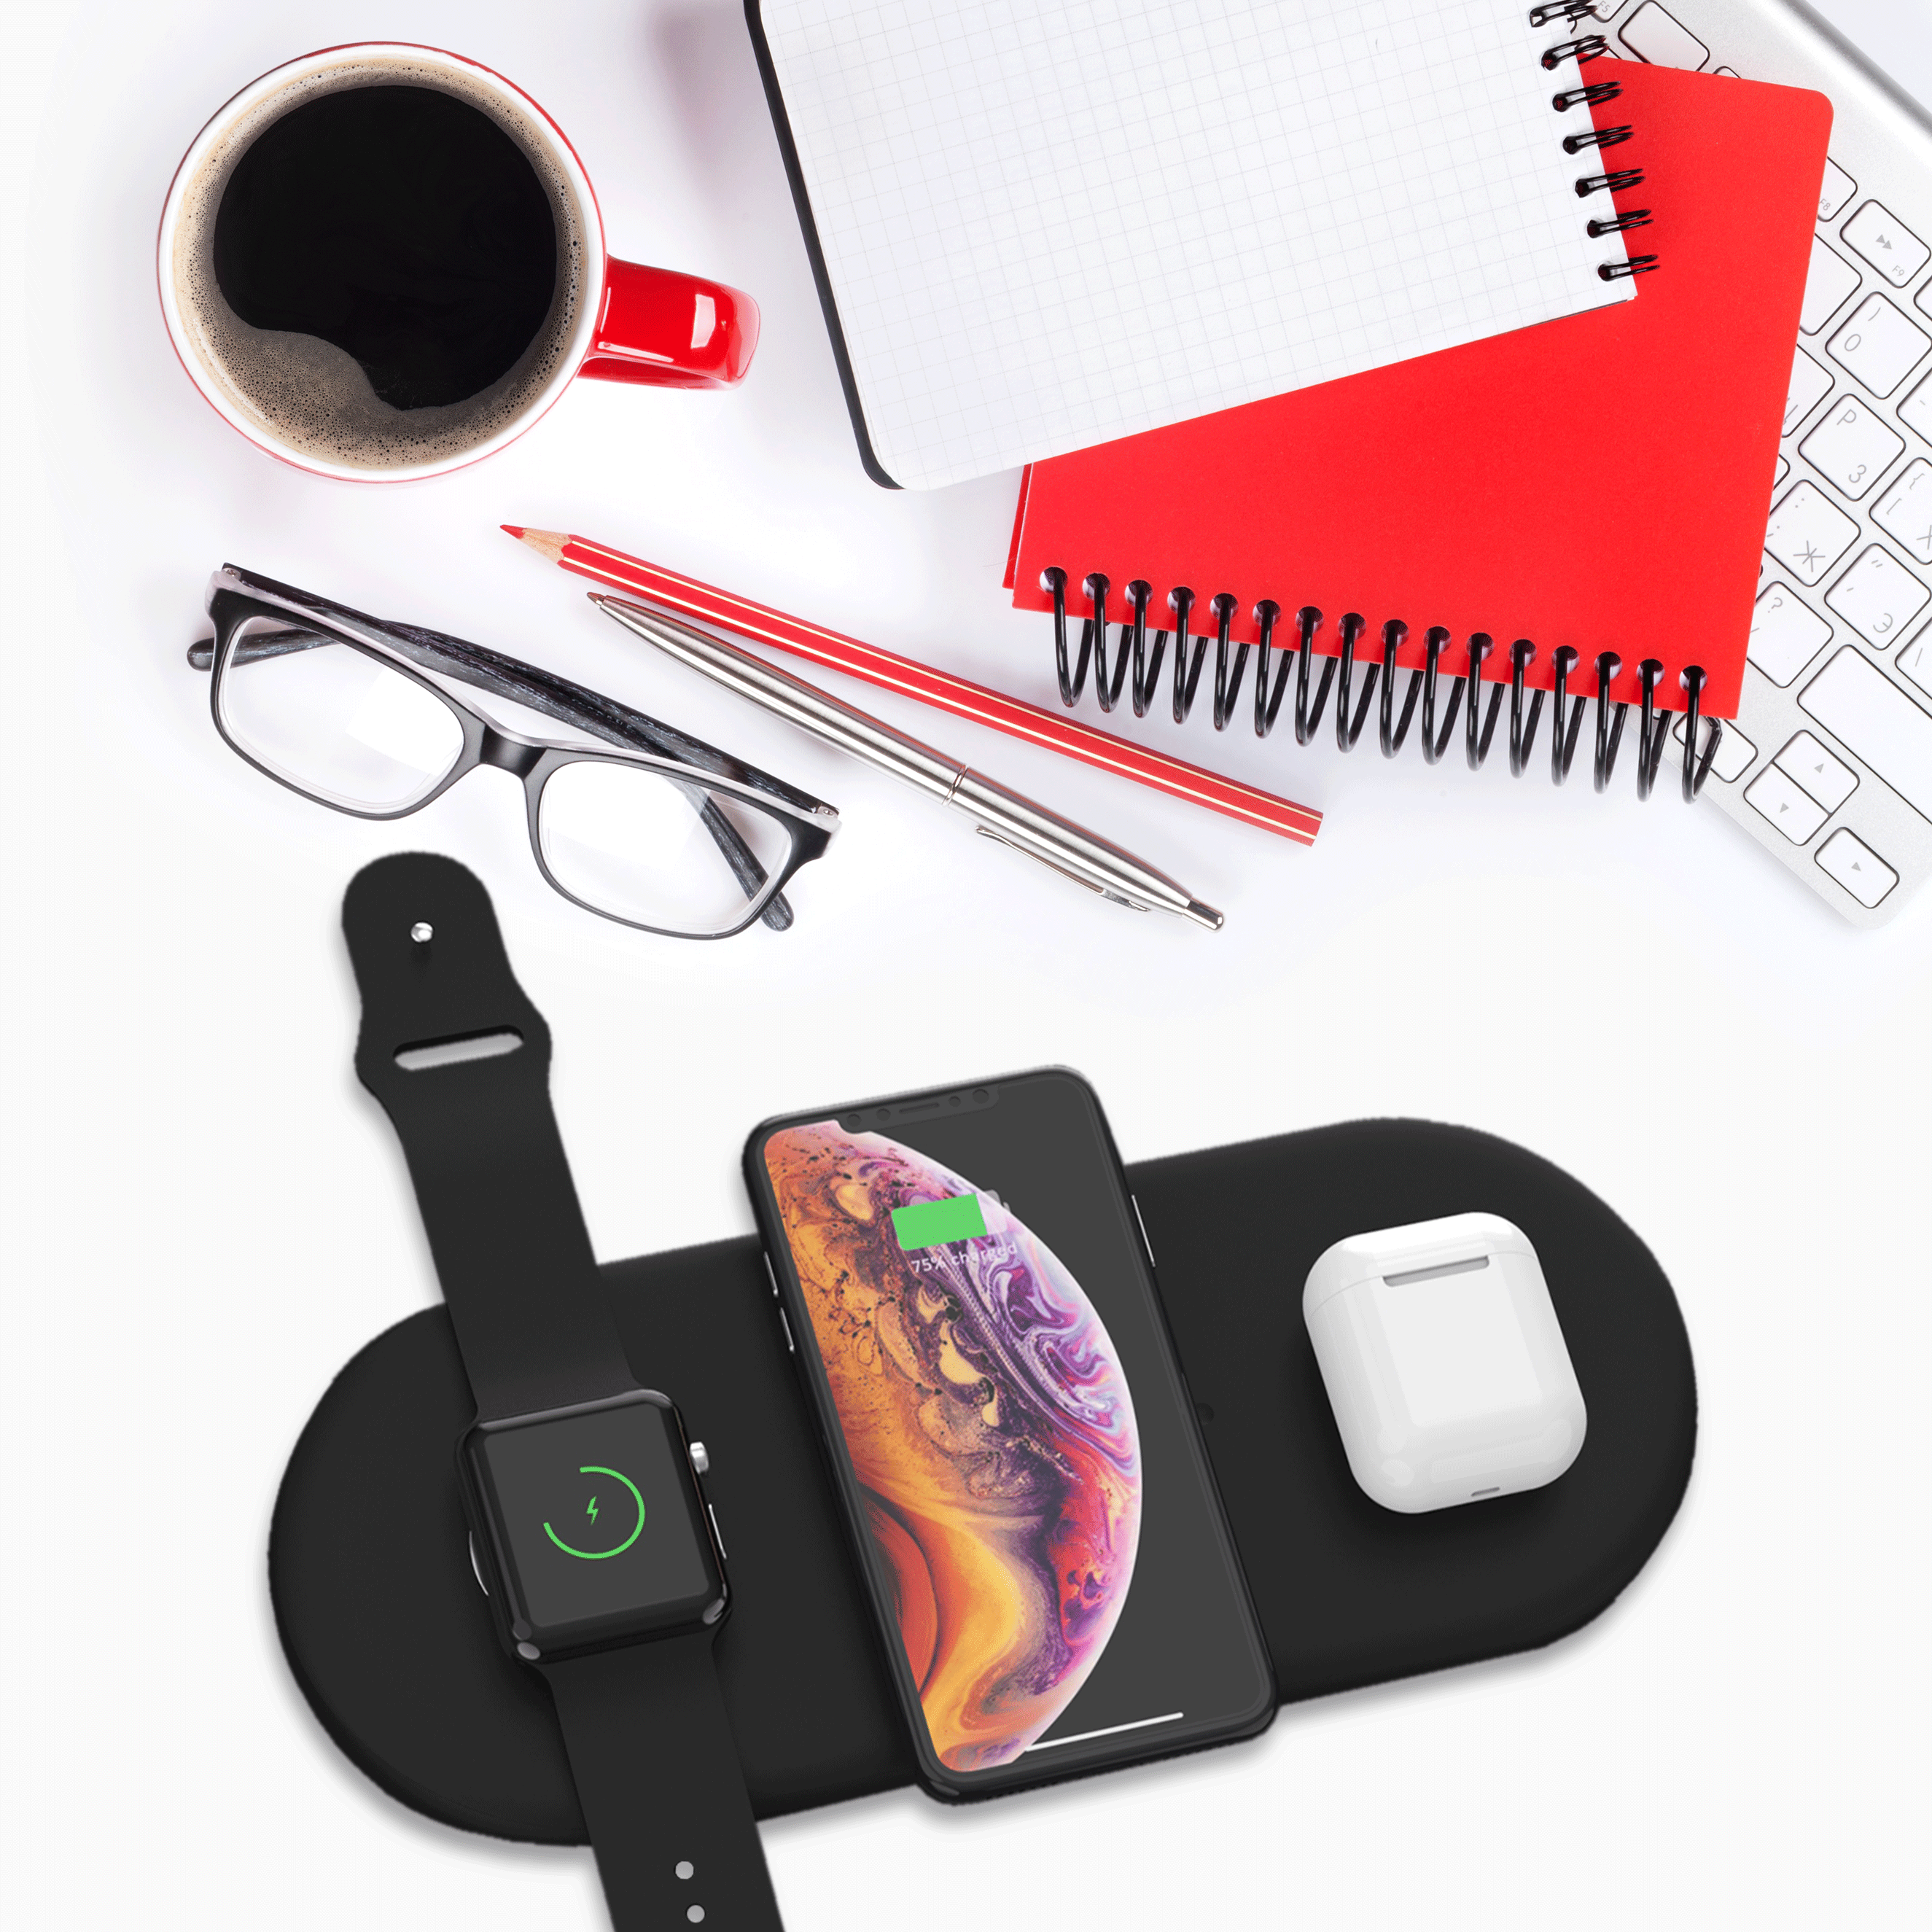 App;e Watch and iphone charger